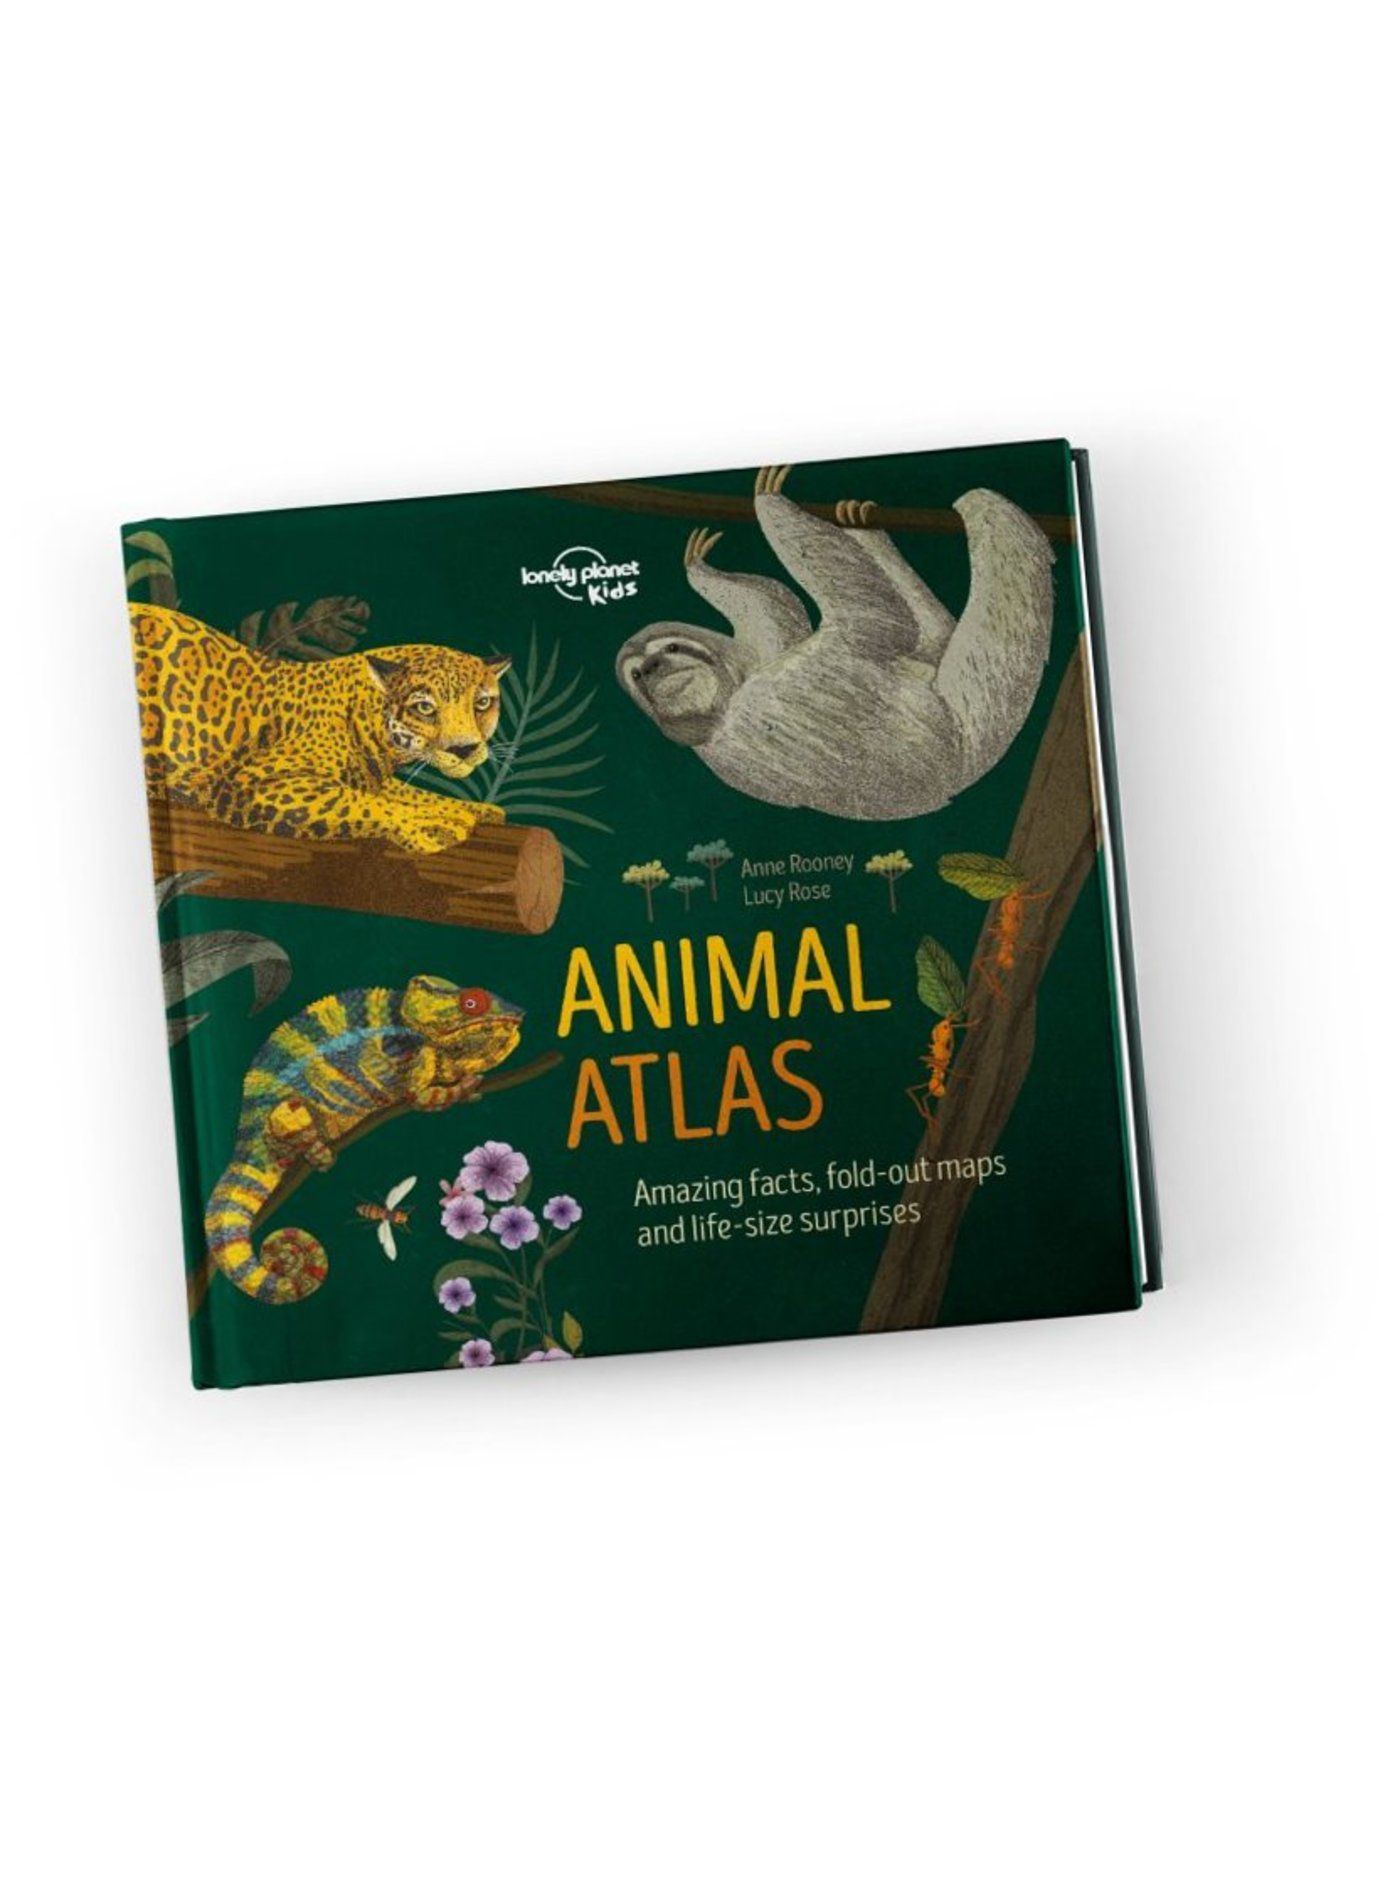 Animal Atlas (North and South America edition)